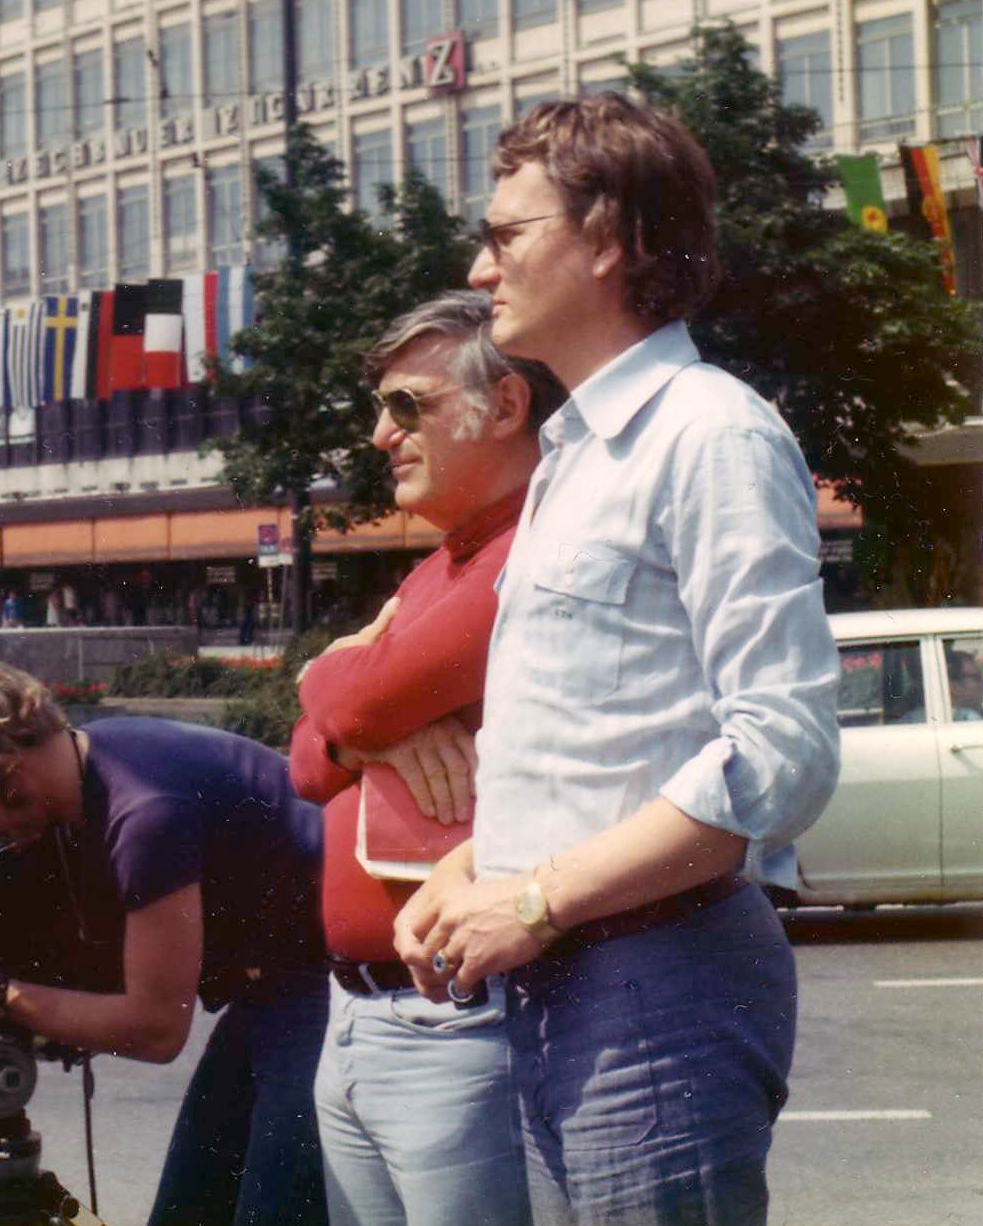 Writer/Director Joe Sarno and Producer Chris Nebe in Germany 1973.